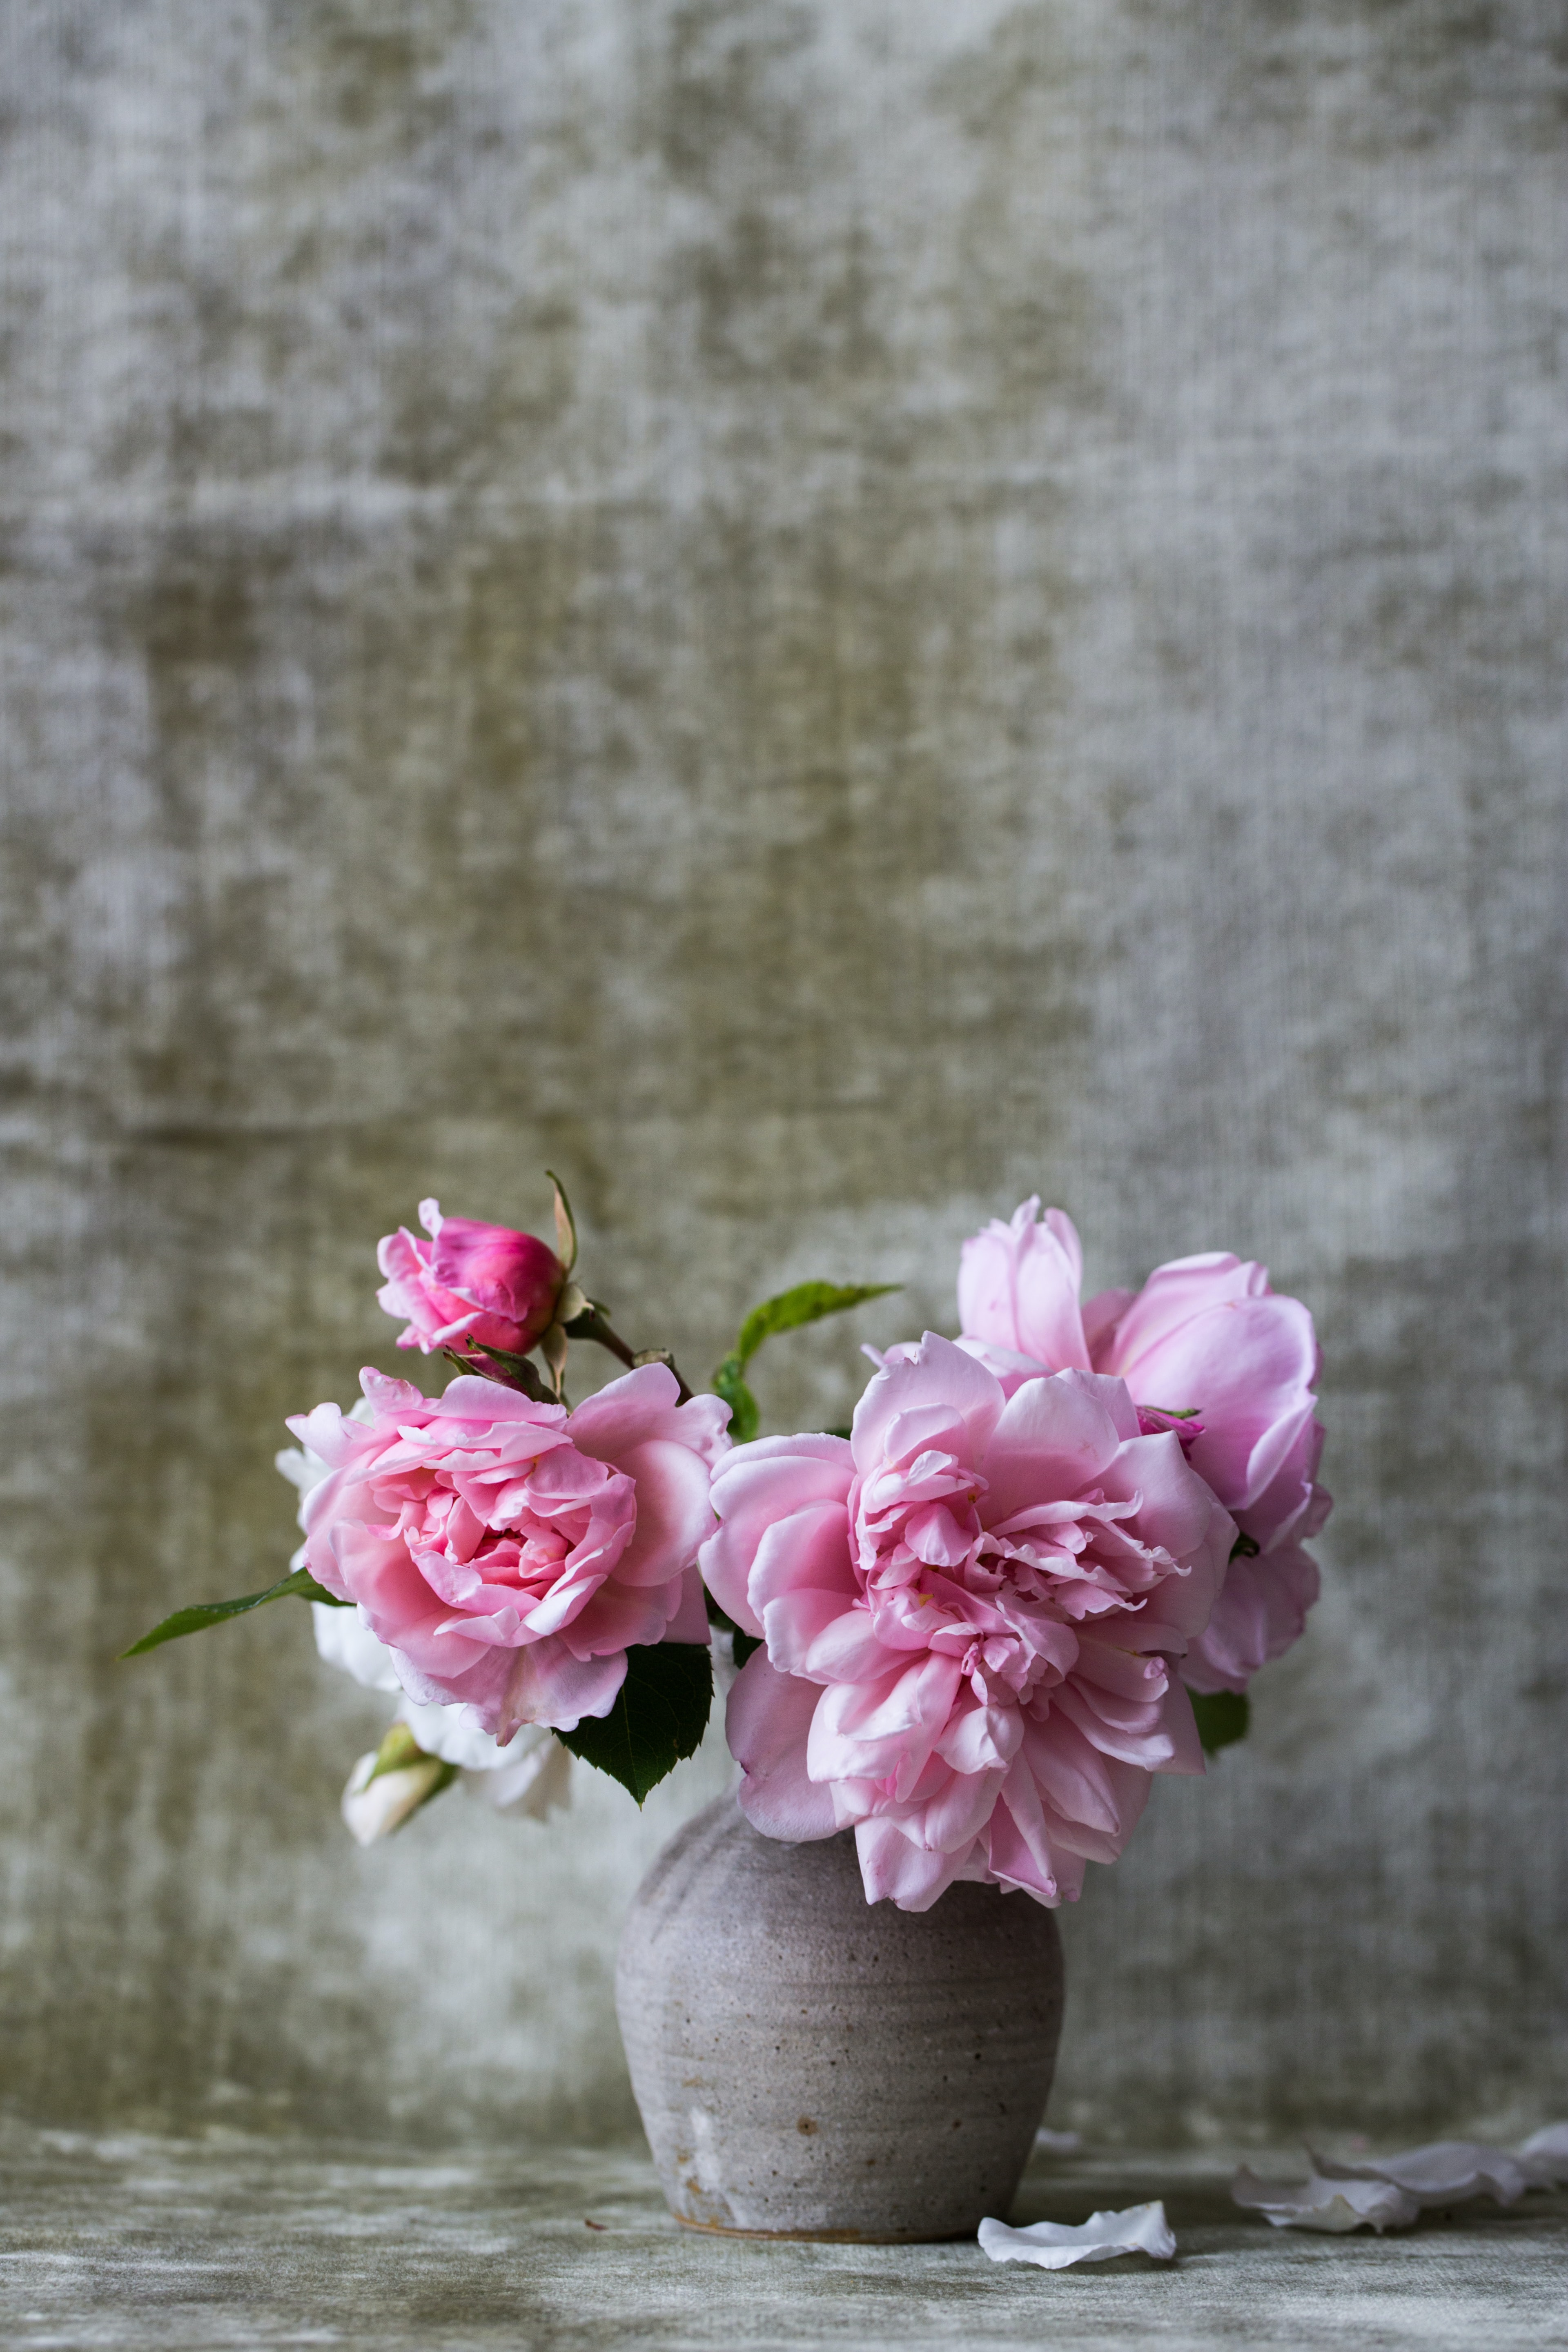 pink flowers on gray ceramic vase